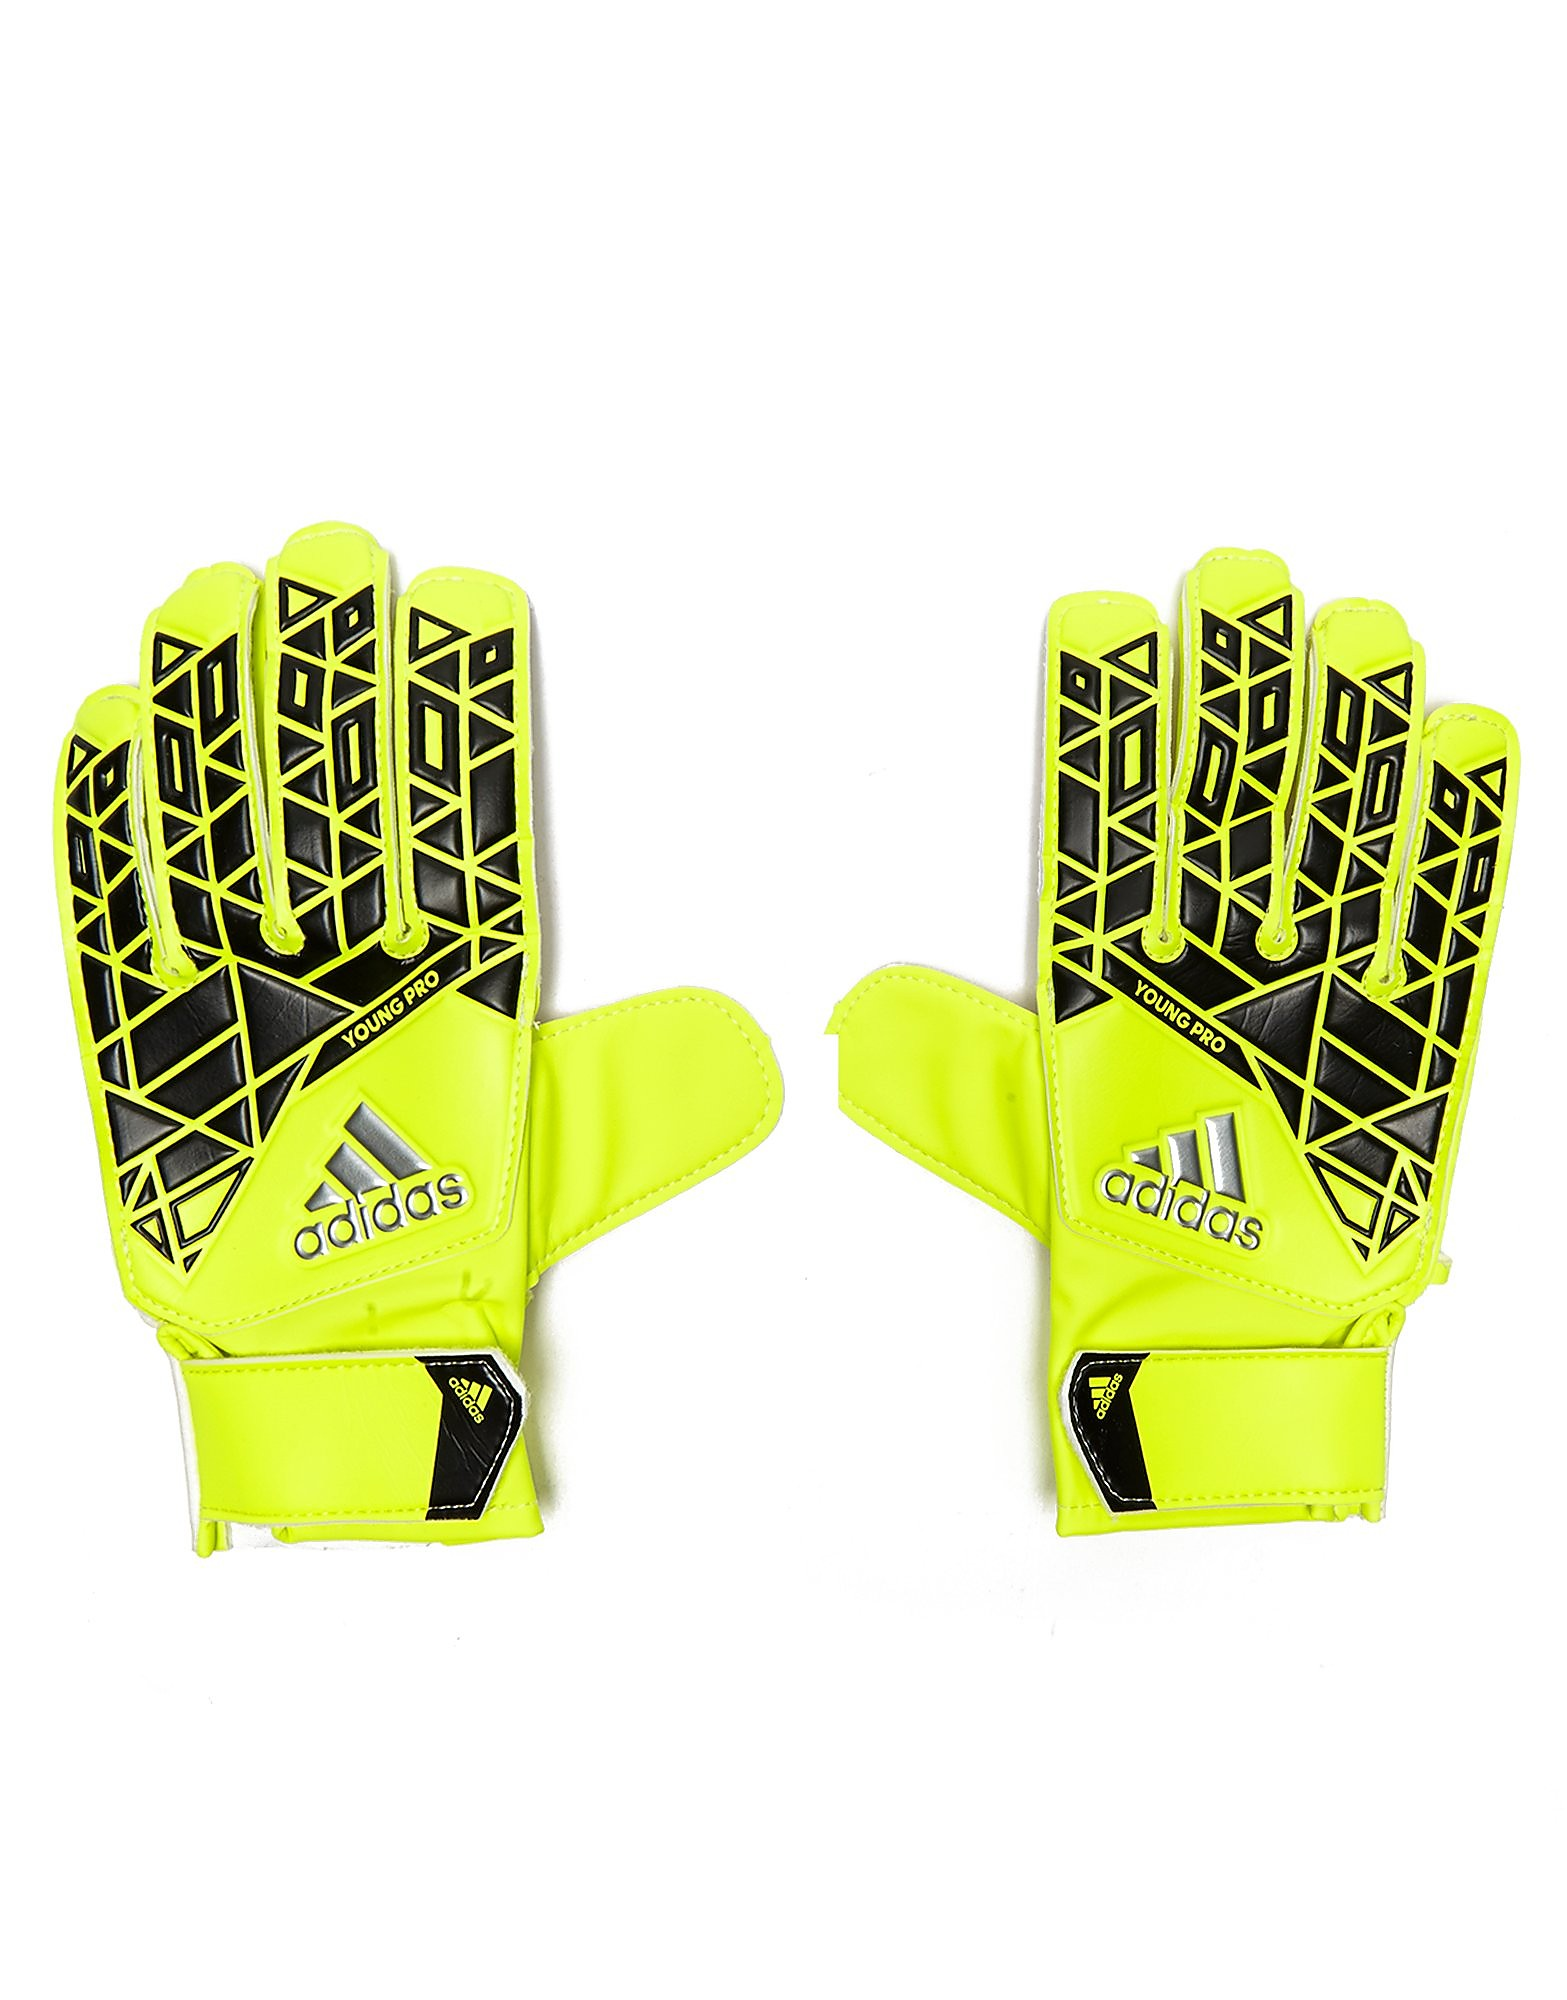 adidas Ace Young Pro Handschuhe